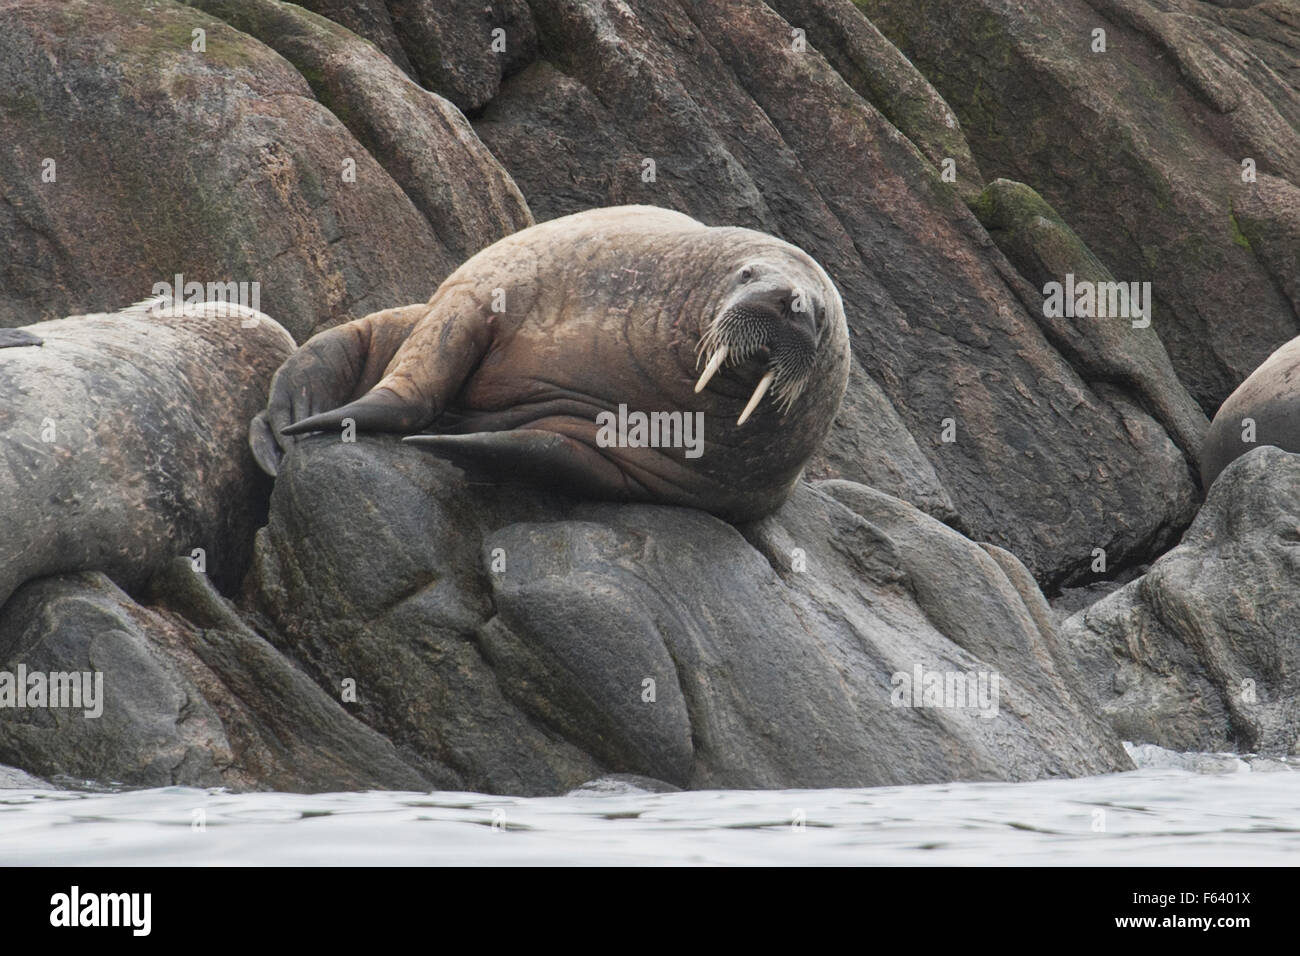 Walrus, Odobenus rosmarus, hauled-out on rocks, Baffin Island, Canadian Arctic. - Stock Image